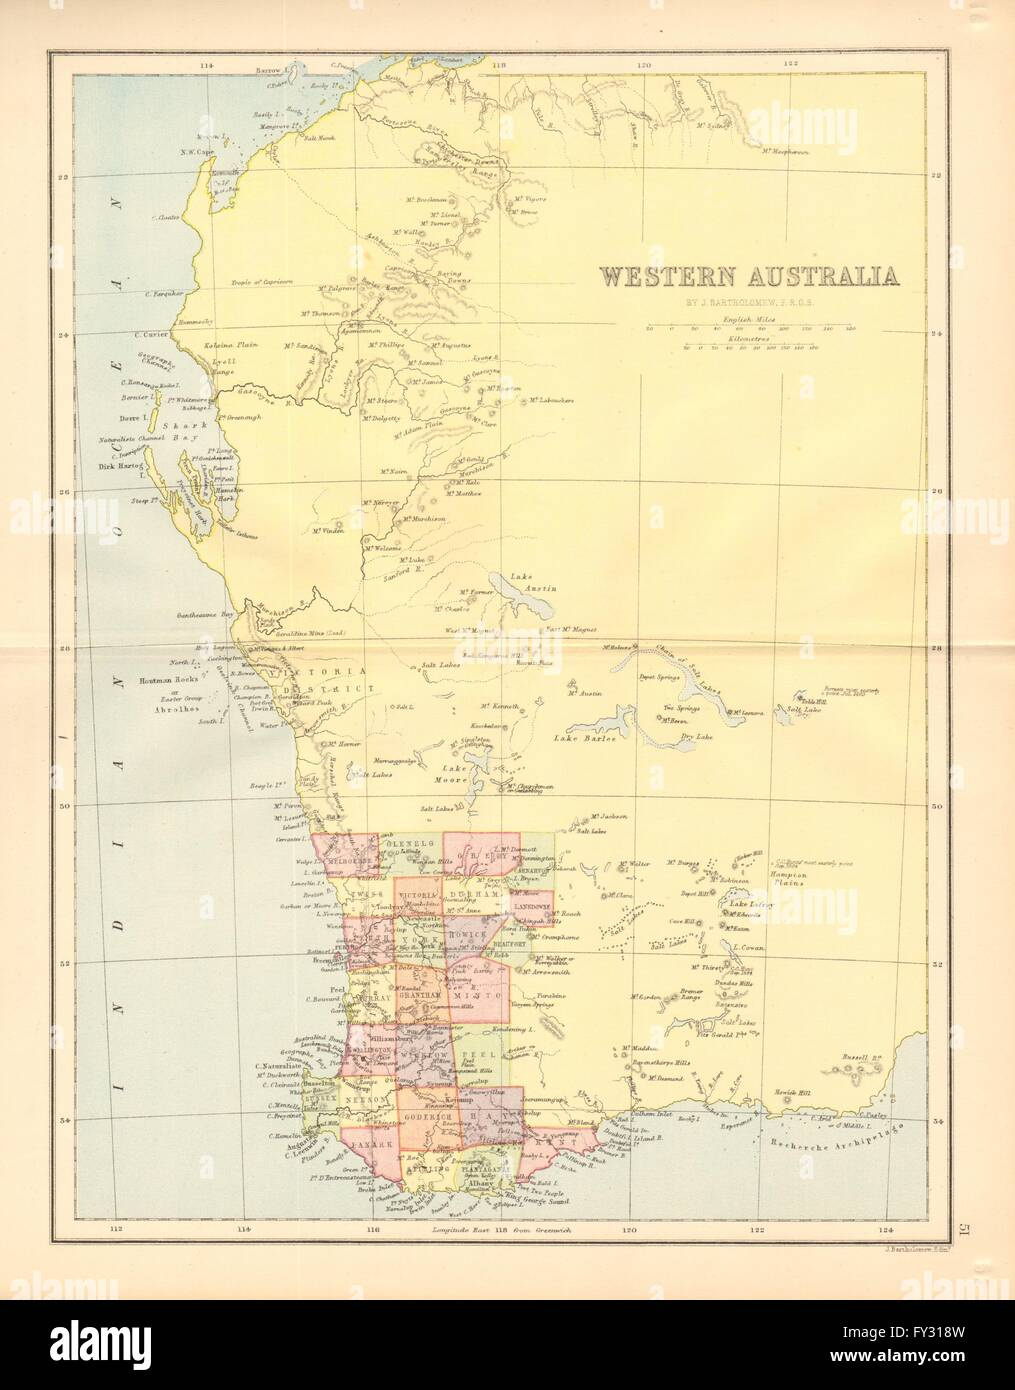 Map Of Australia Showing Perth.Western Australia State Map Showing Only 26 Counties Perth 1876